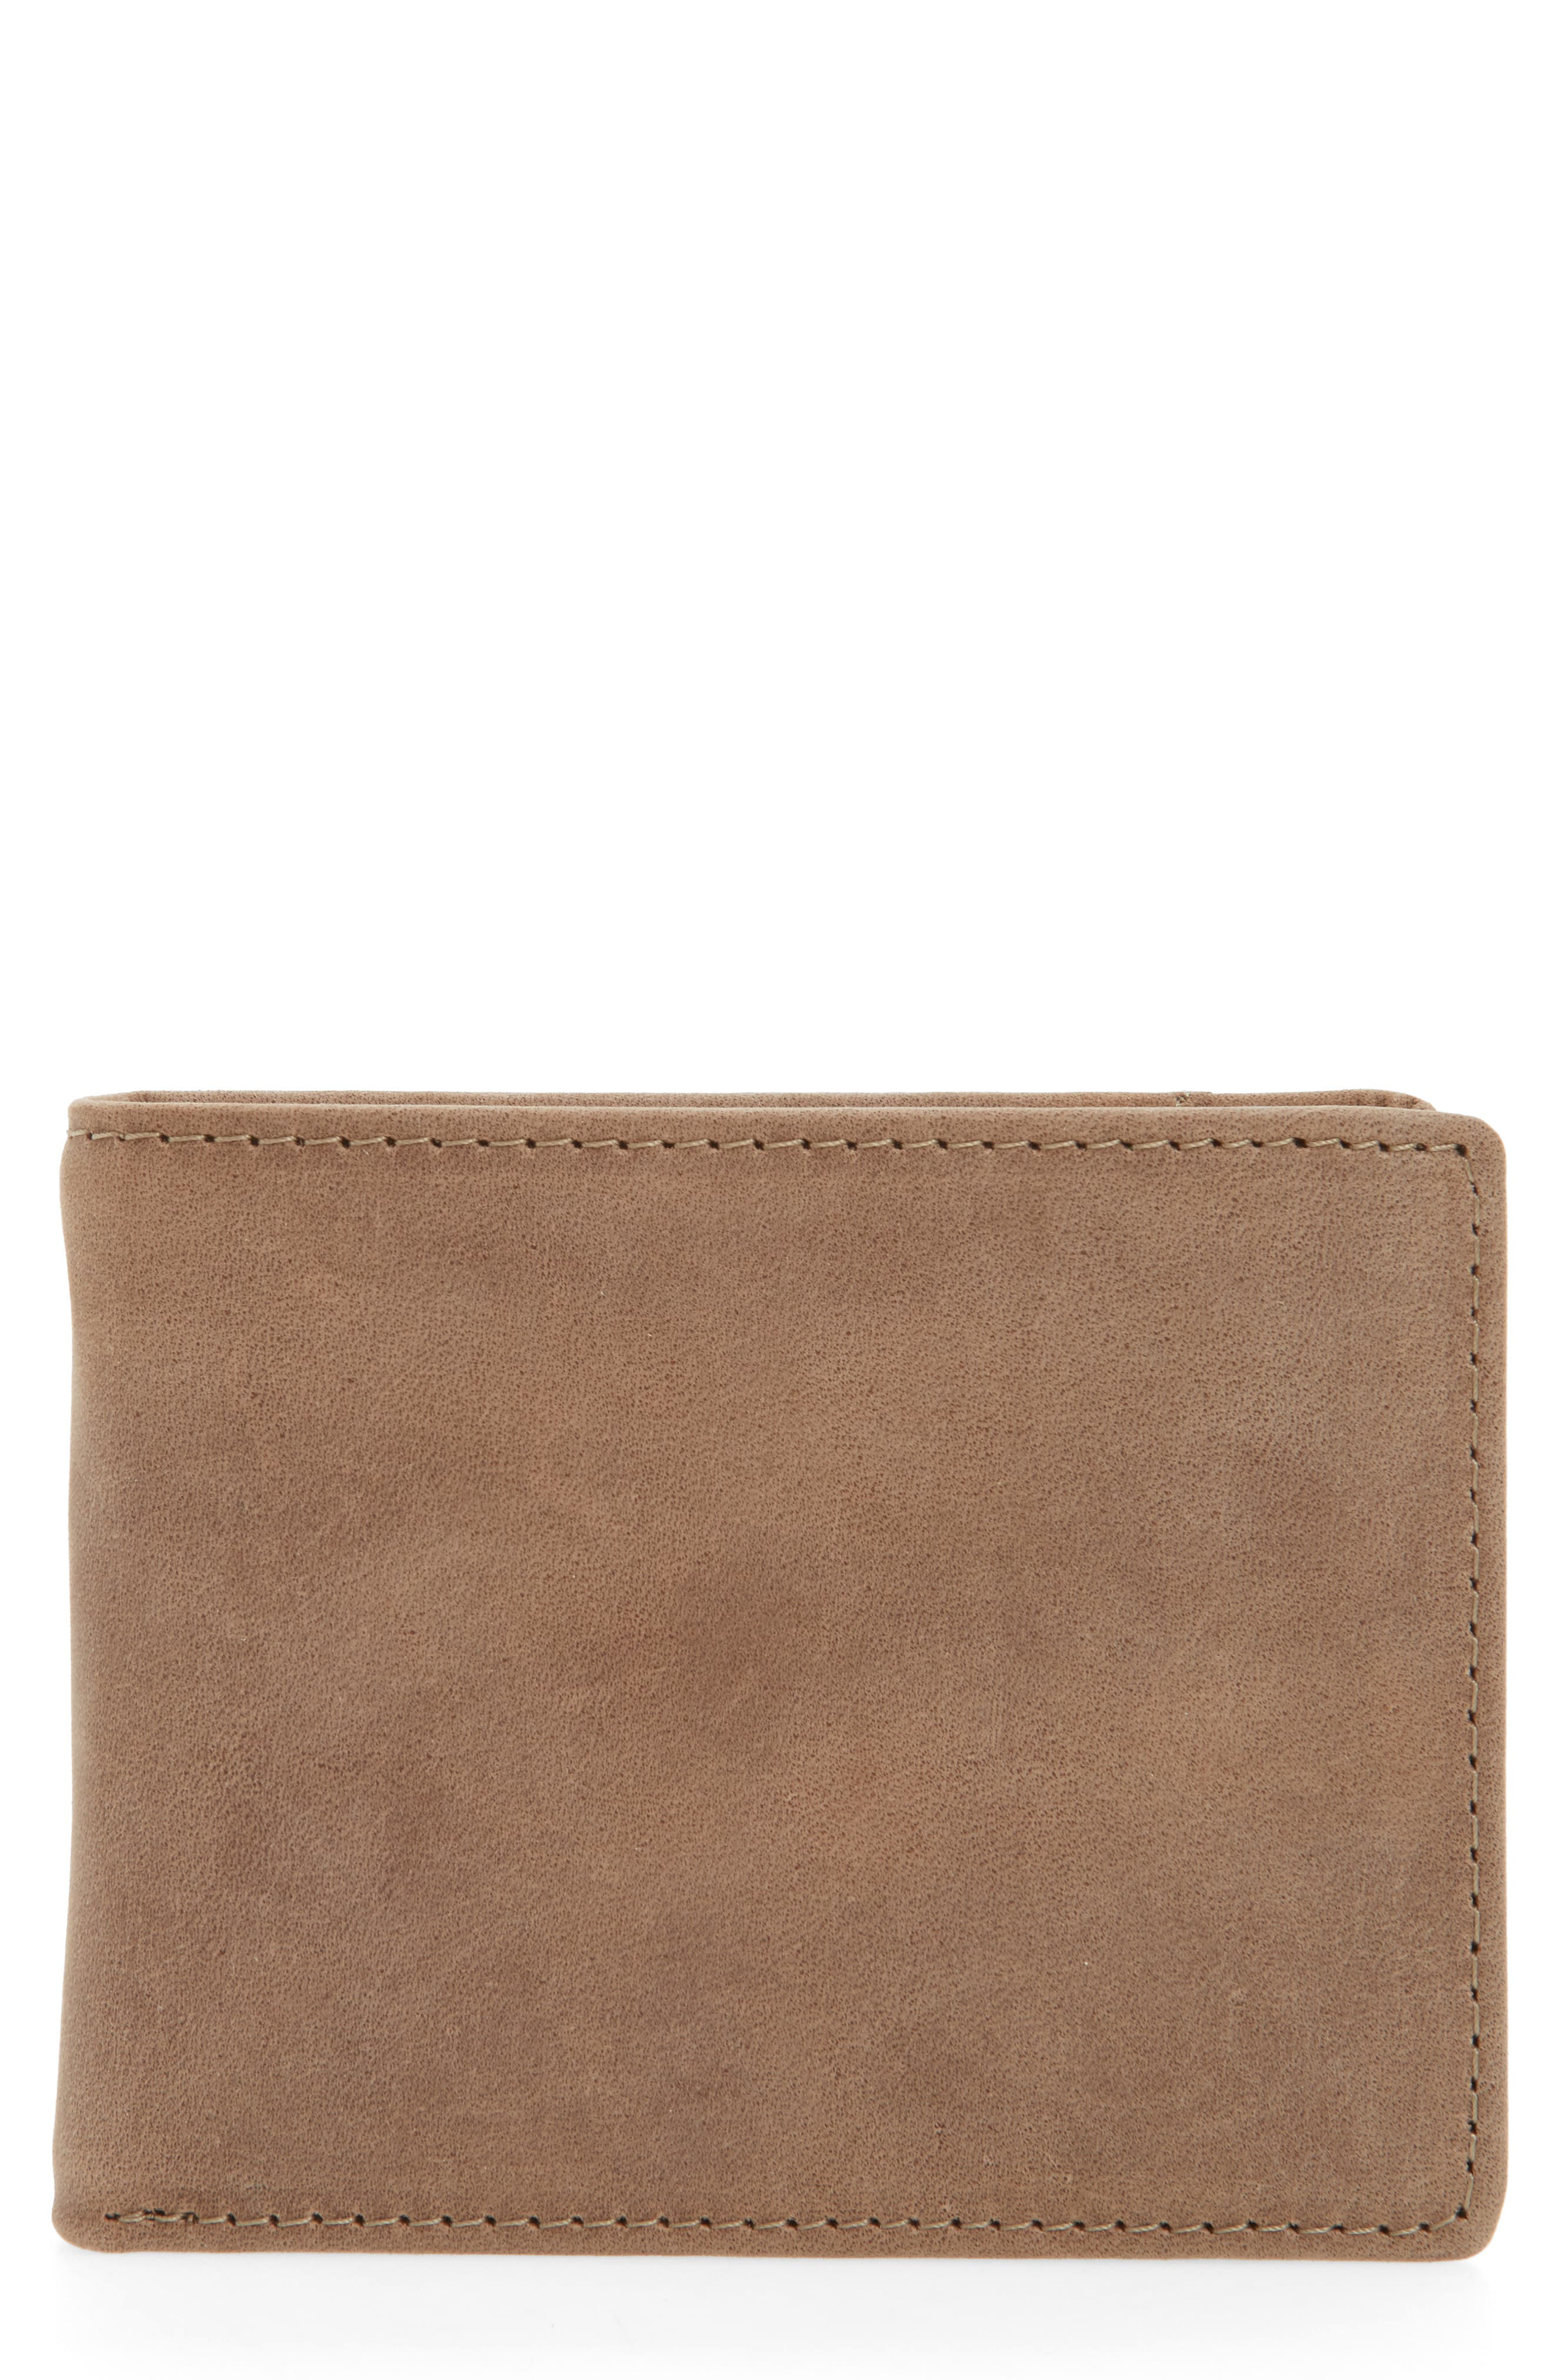 Upton Leather Wallet,                             Main thumbnail 1, color,